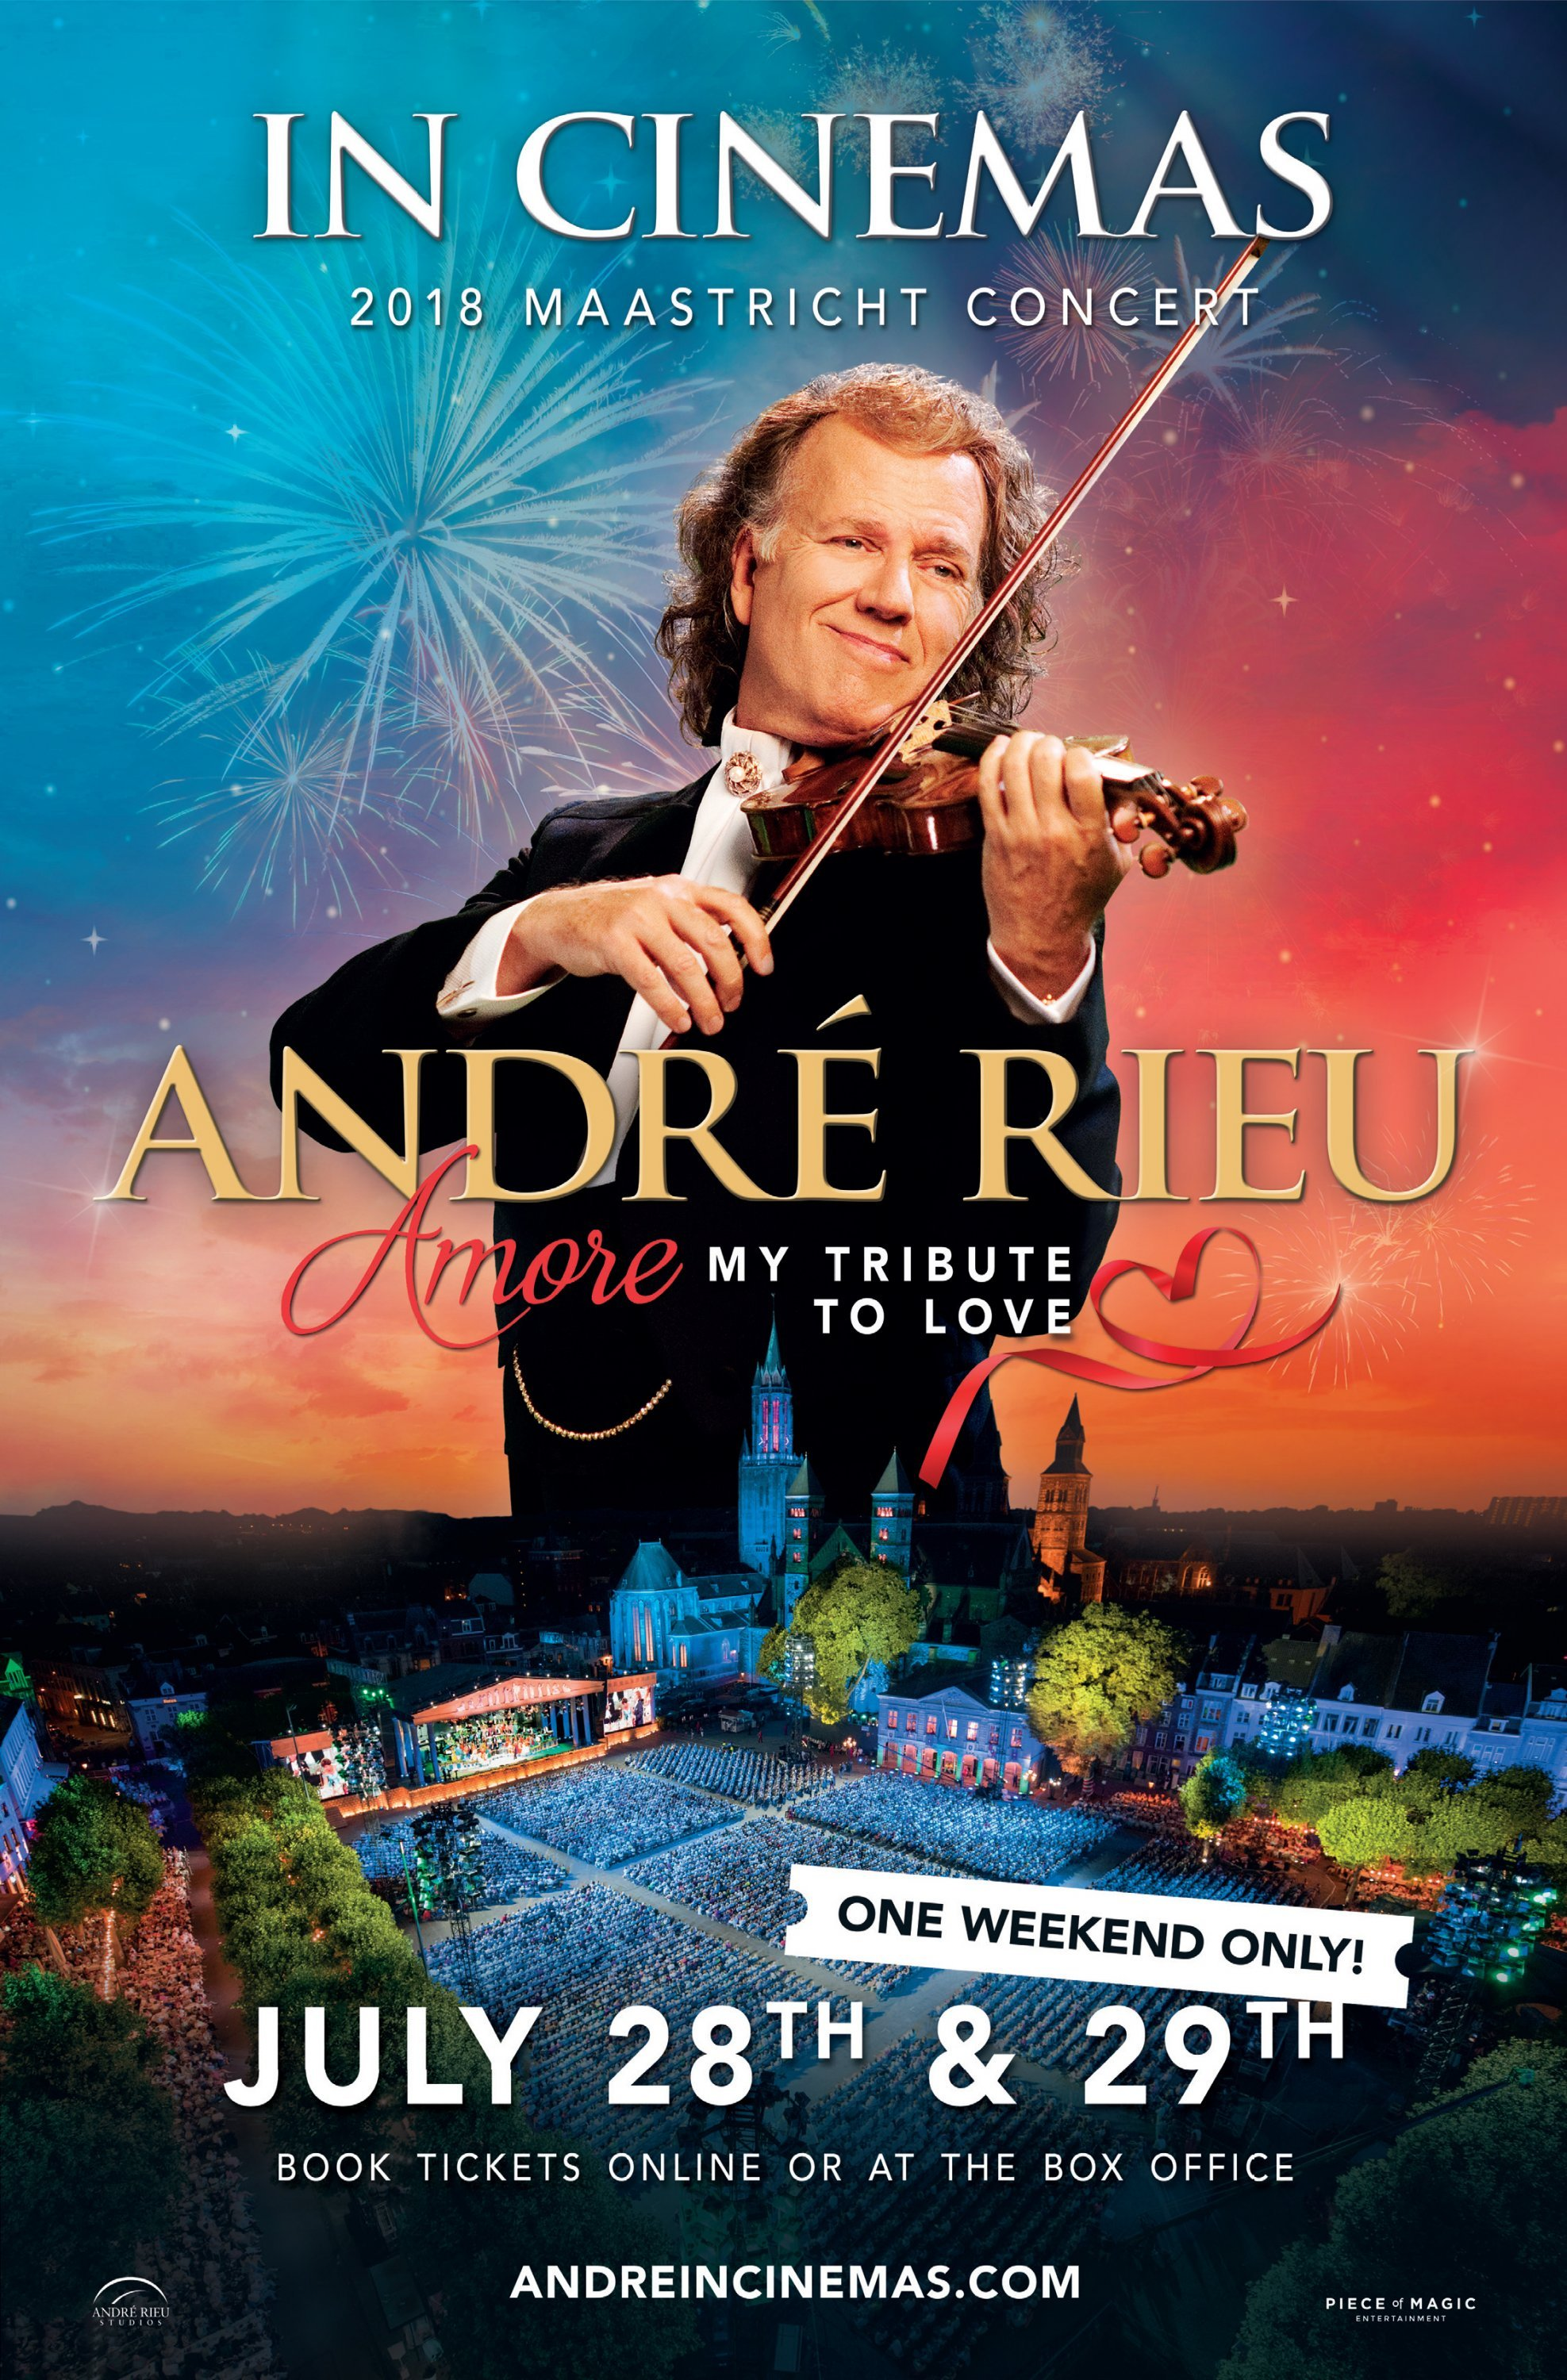 Poster of Andre Rieu's 2018 Maastricht Concert